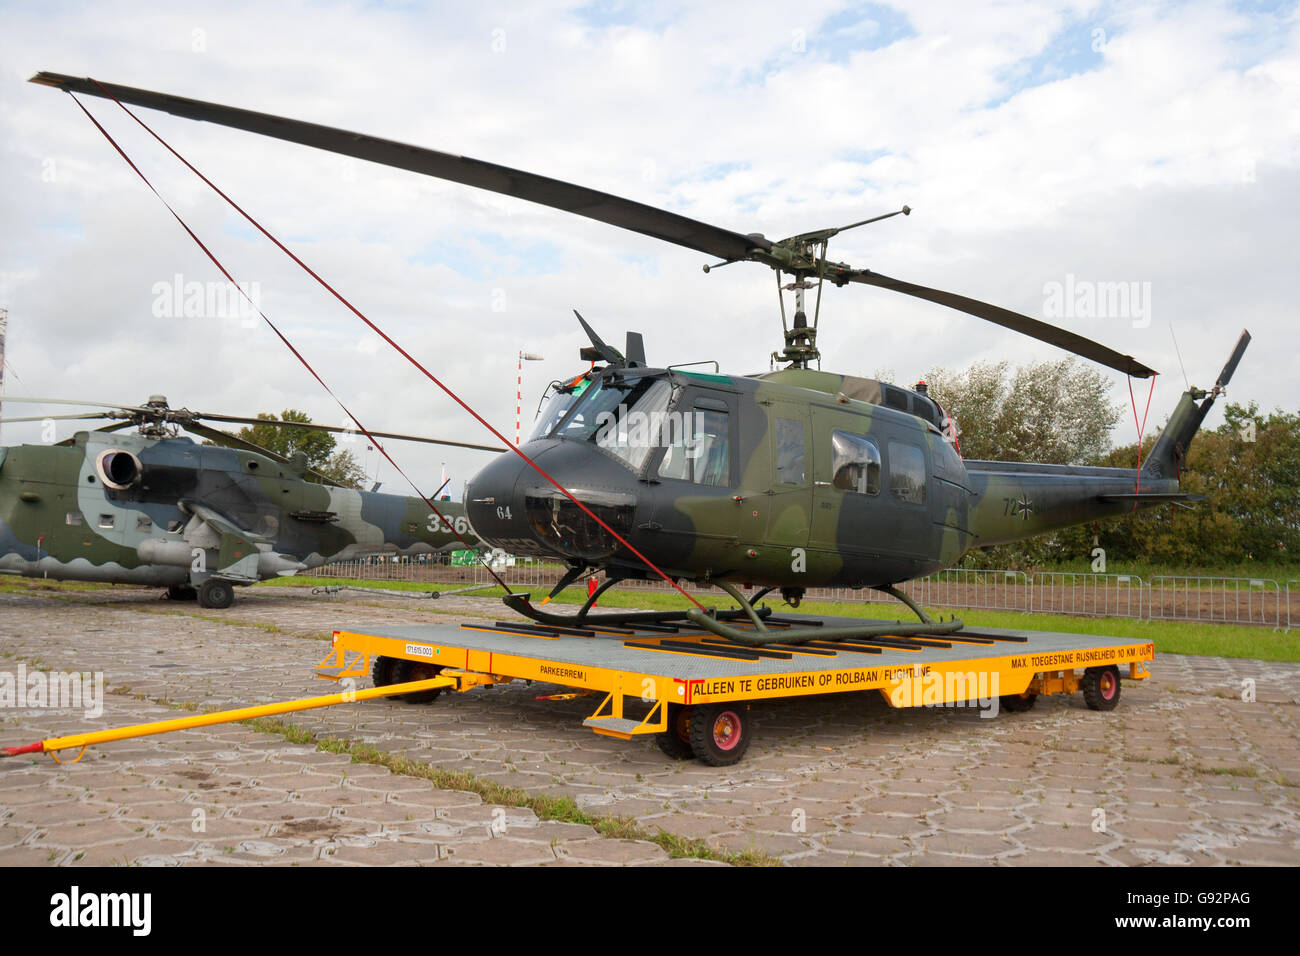 German Army UH-1D Huey helicopter. - Stock Image